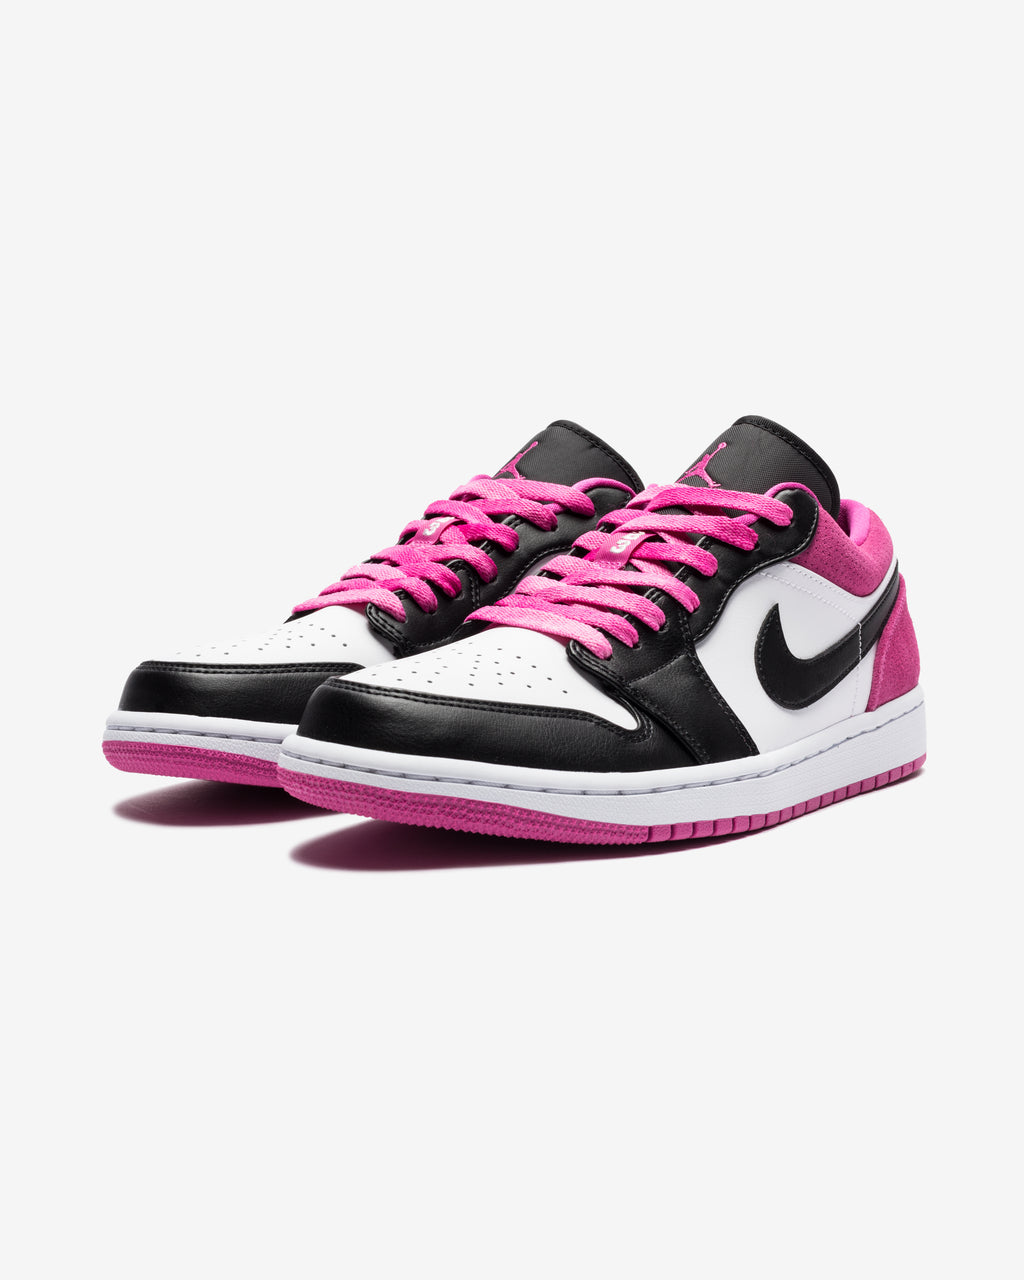 AJ 1 LOW SE - BLACK/ WHITE/ MAGENTA